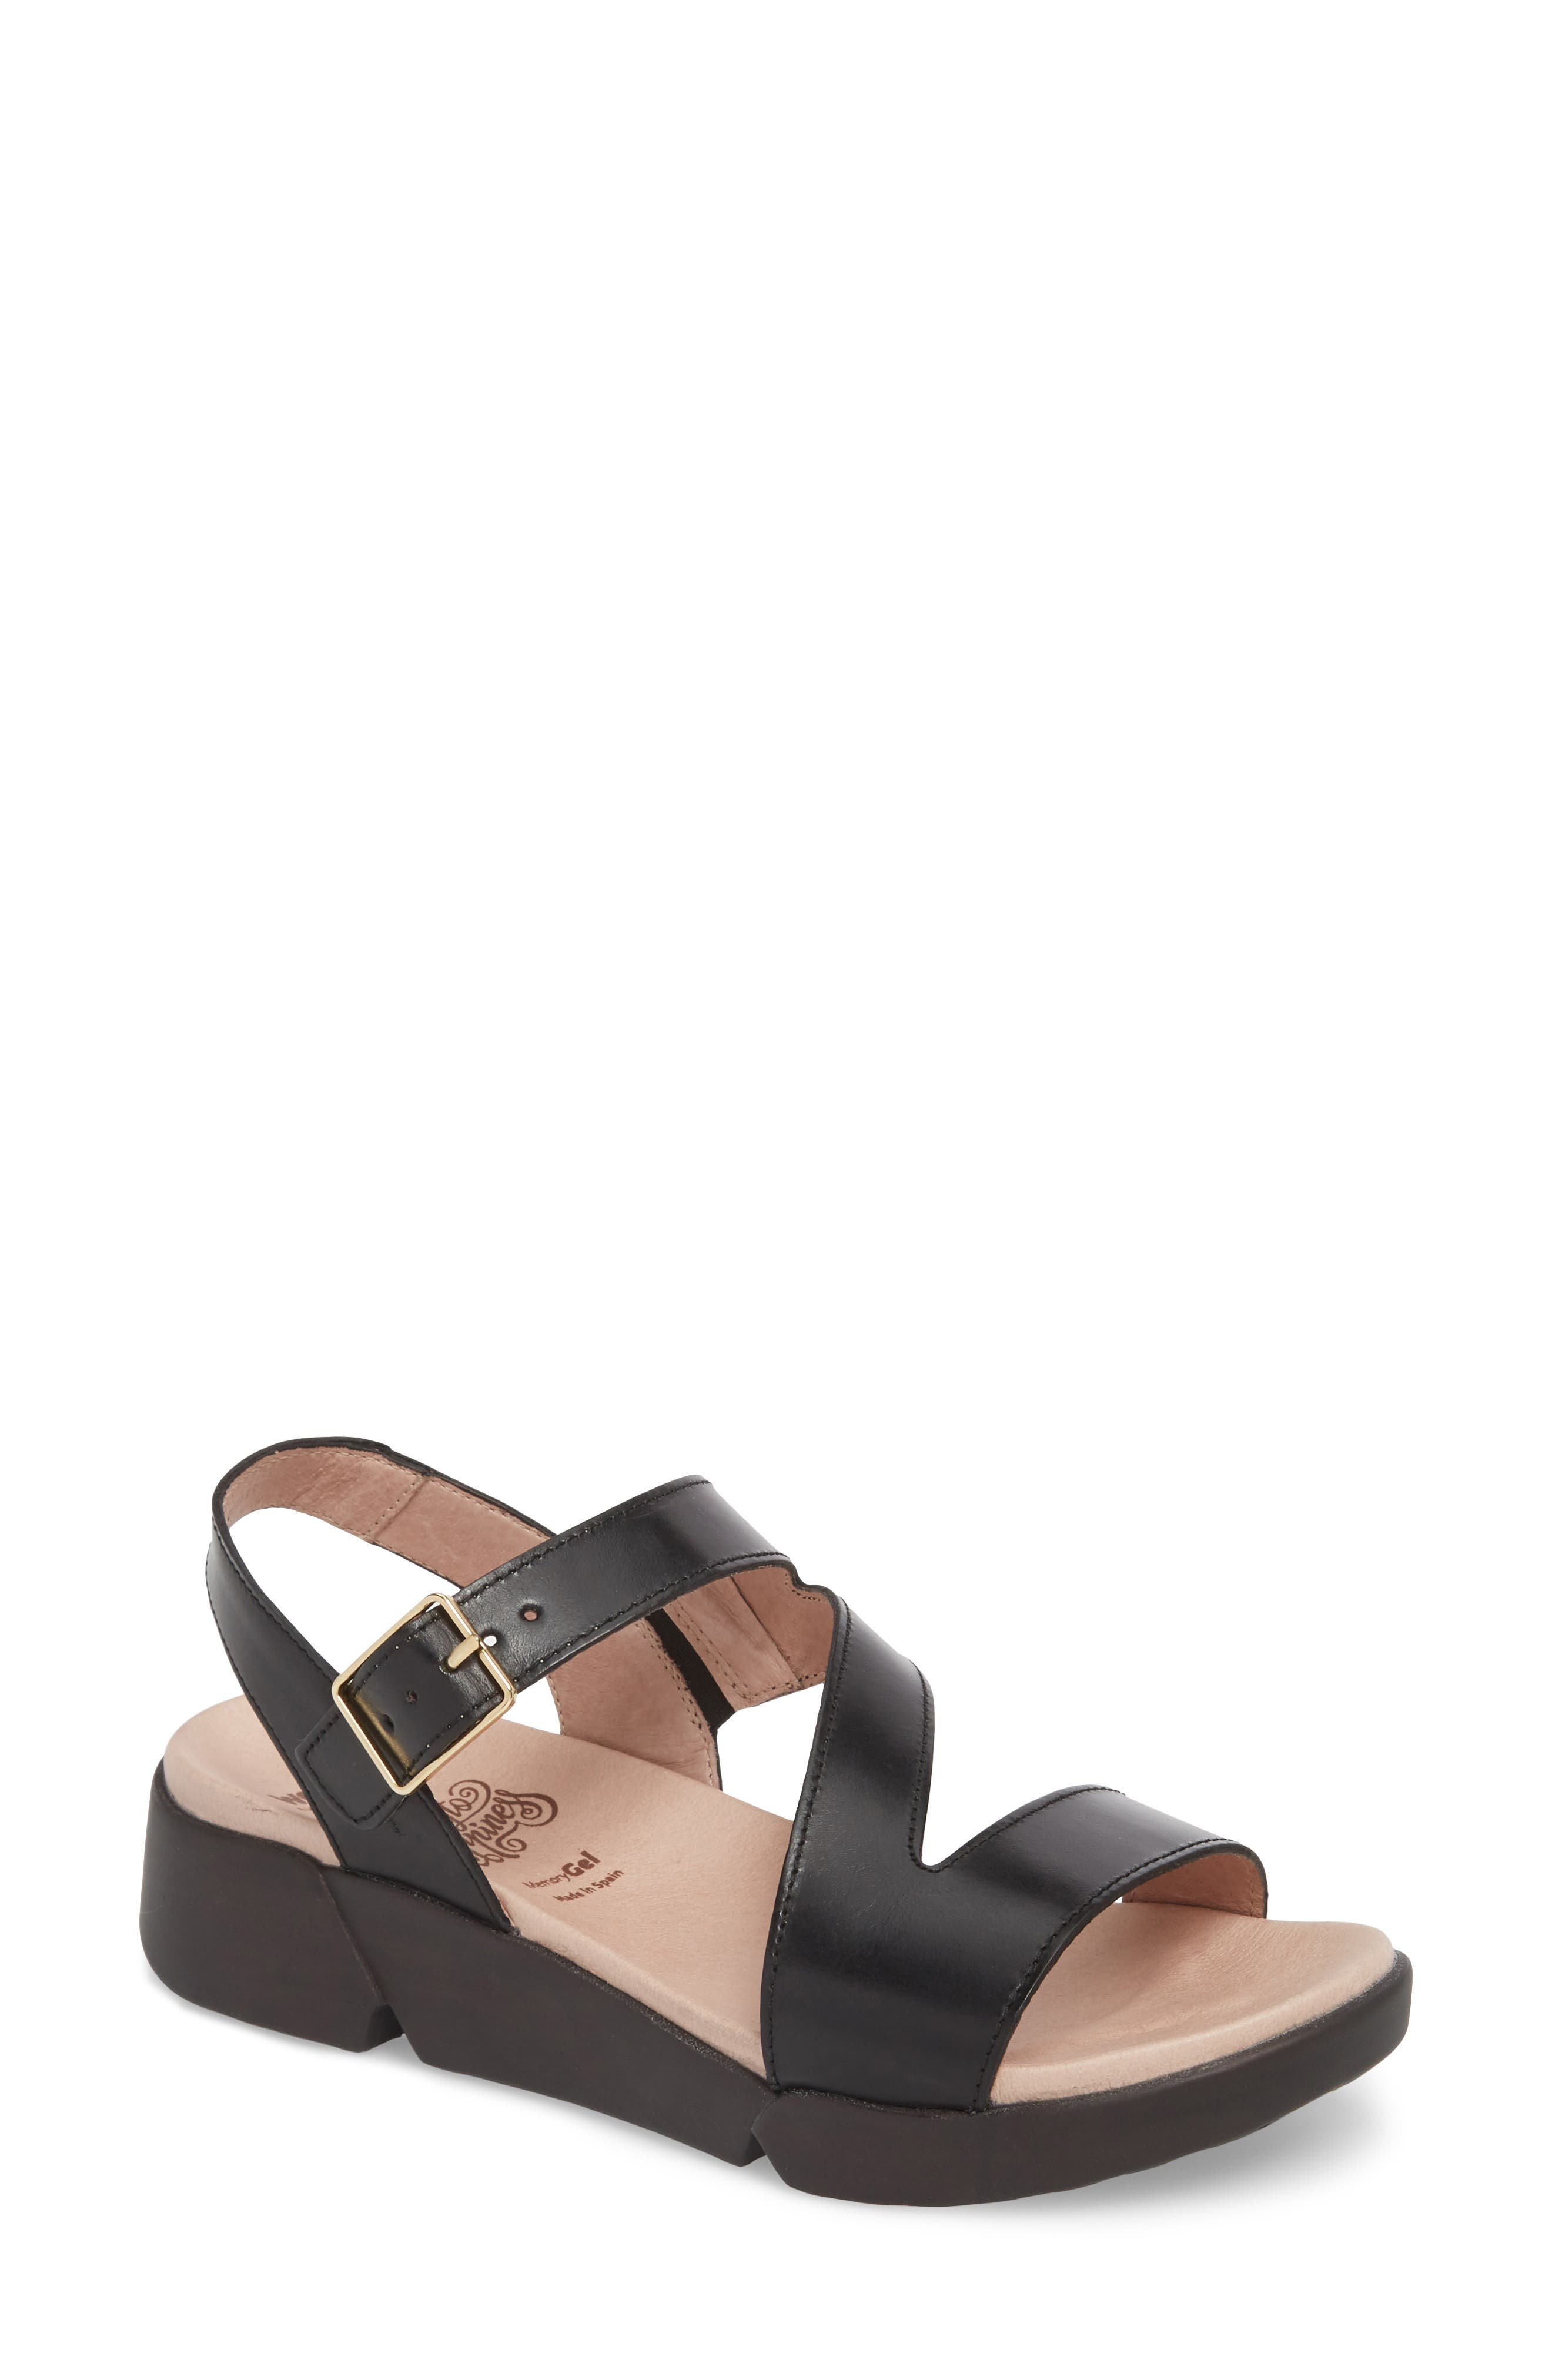 Platform Wedge Sandal,                             Main thumbnail 1, color,                             BLACK LEATHER